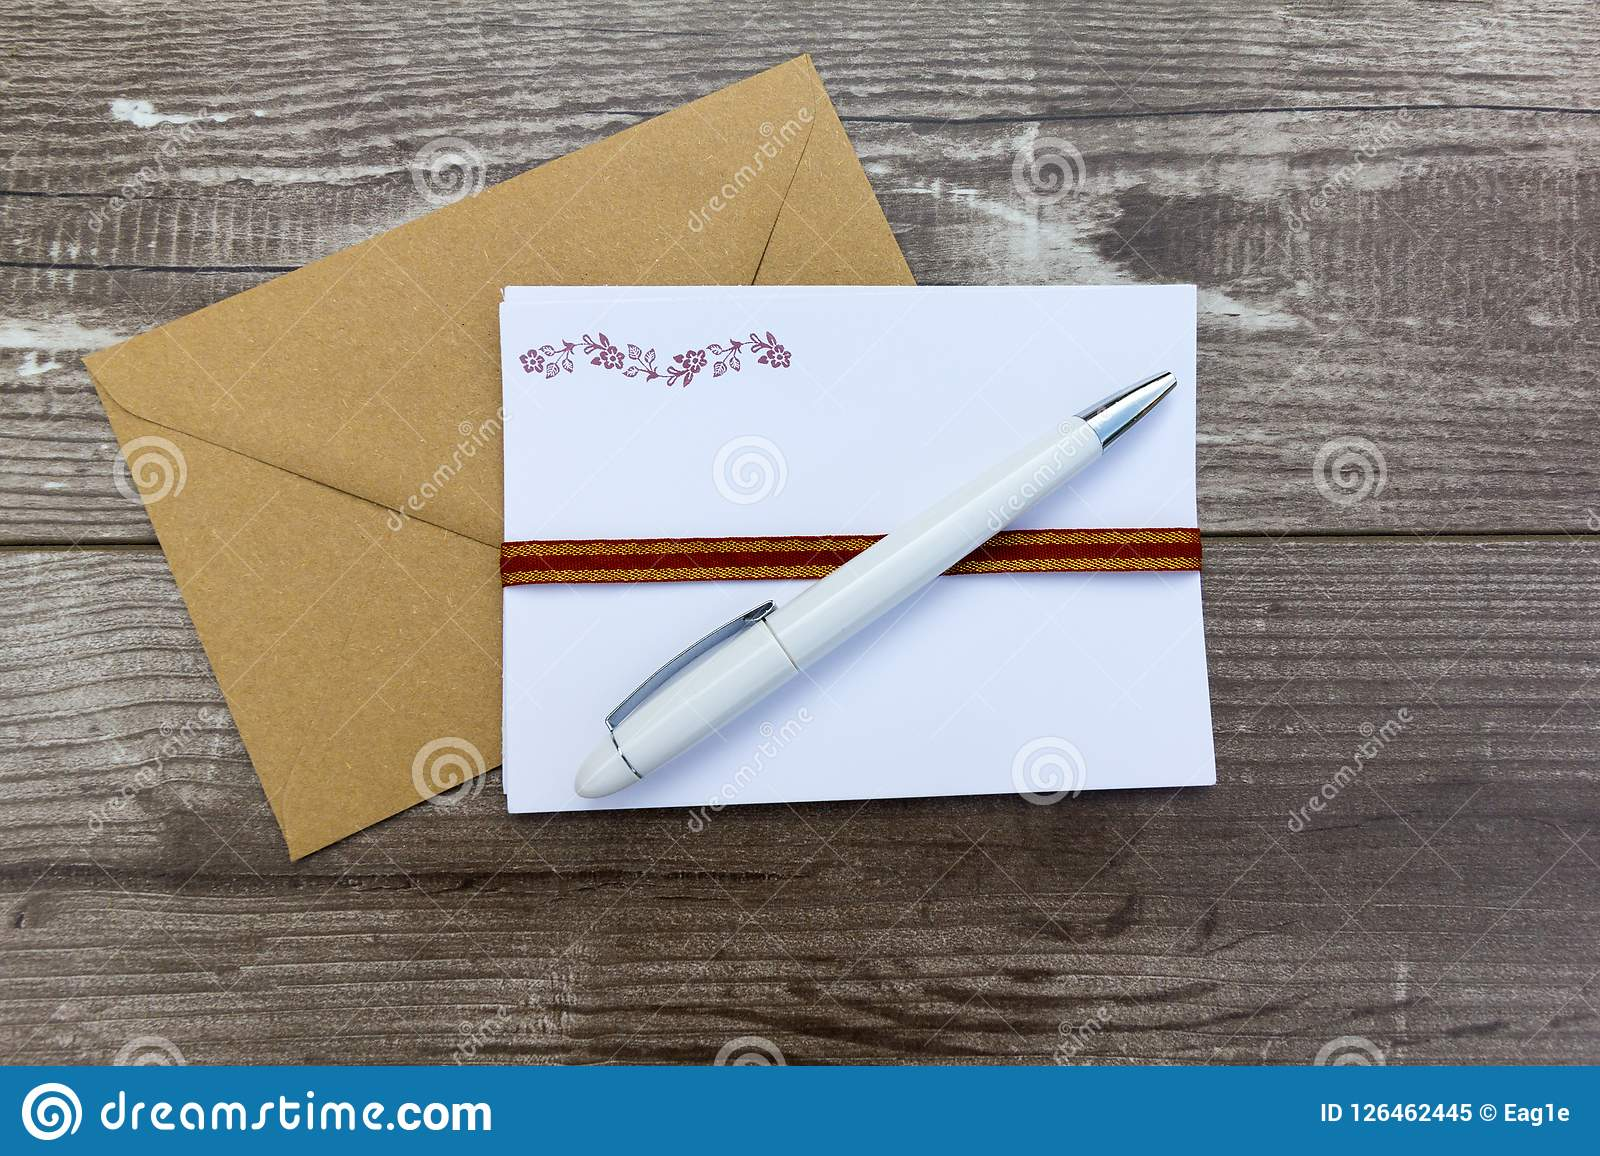 letter writing materials stock image image of communication 126462445